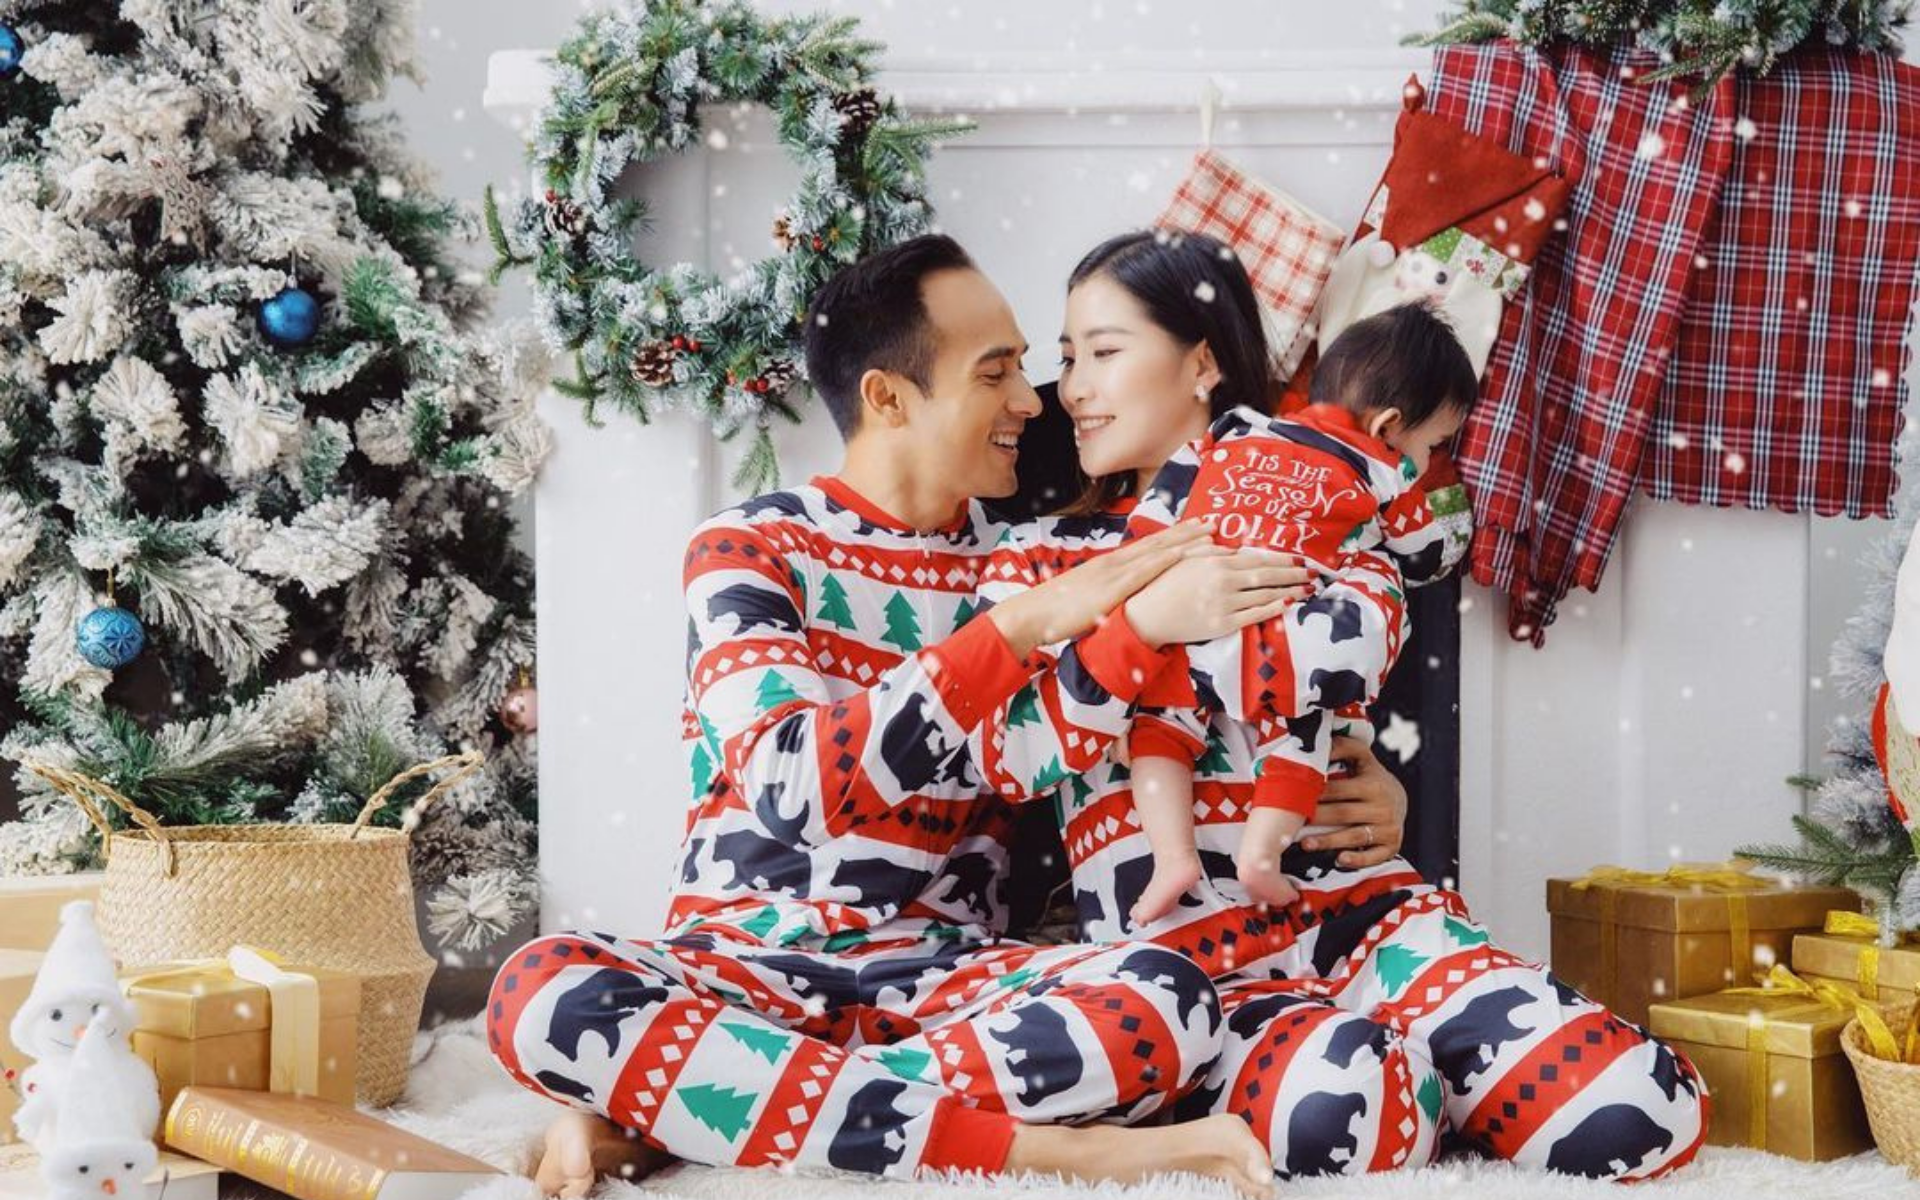 Tatlergram: 9 Festive Moments From The Christmas Weekend